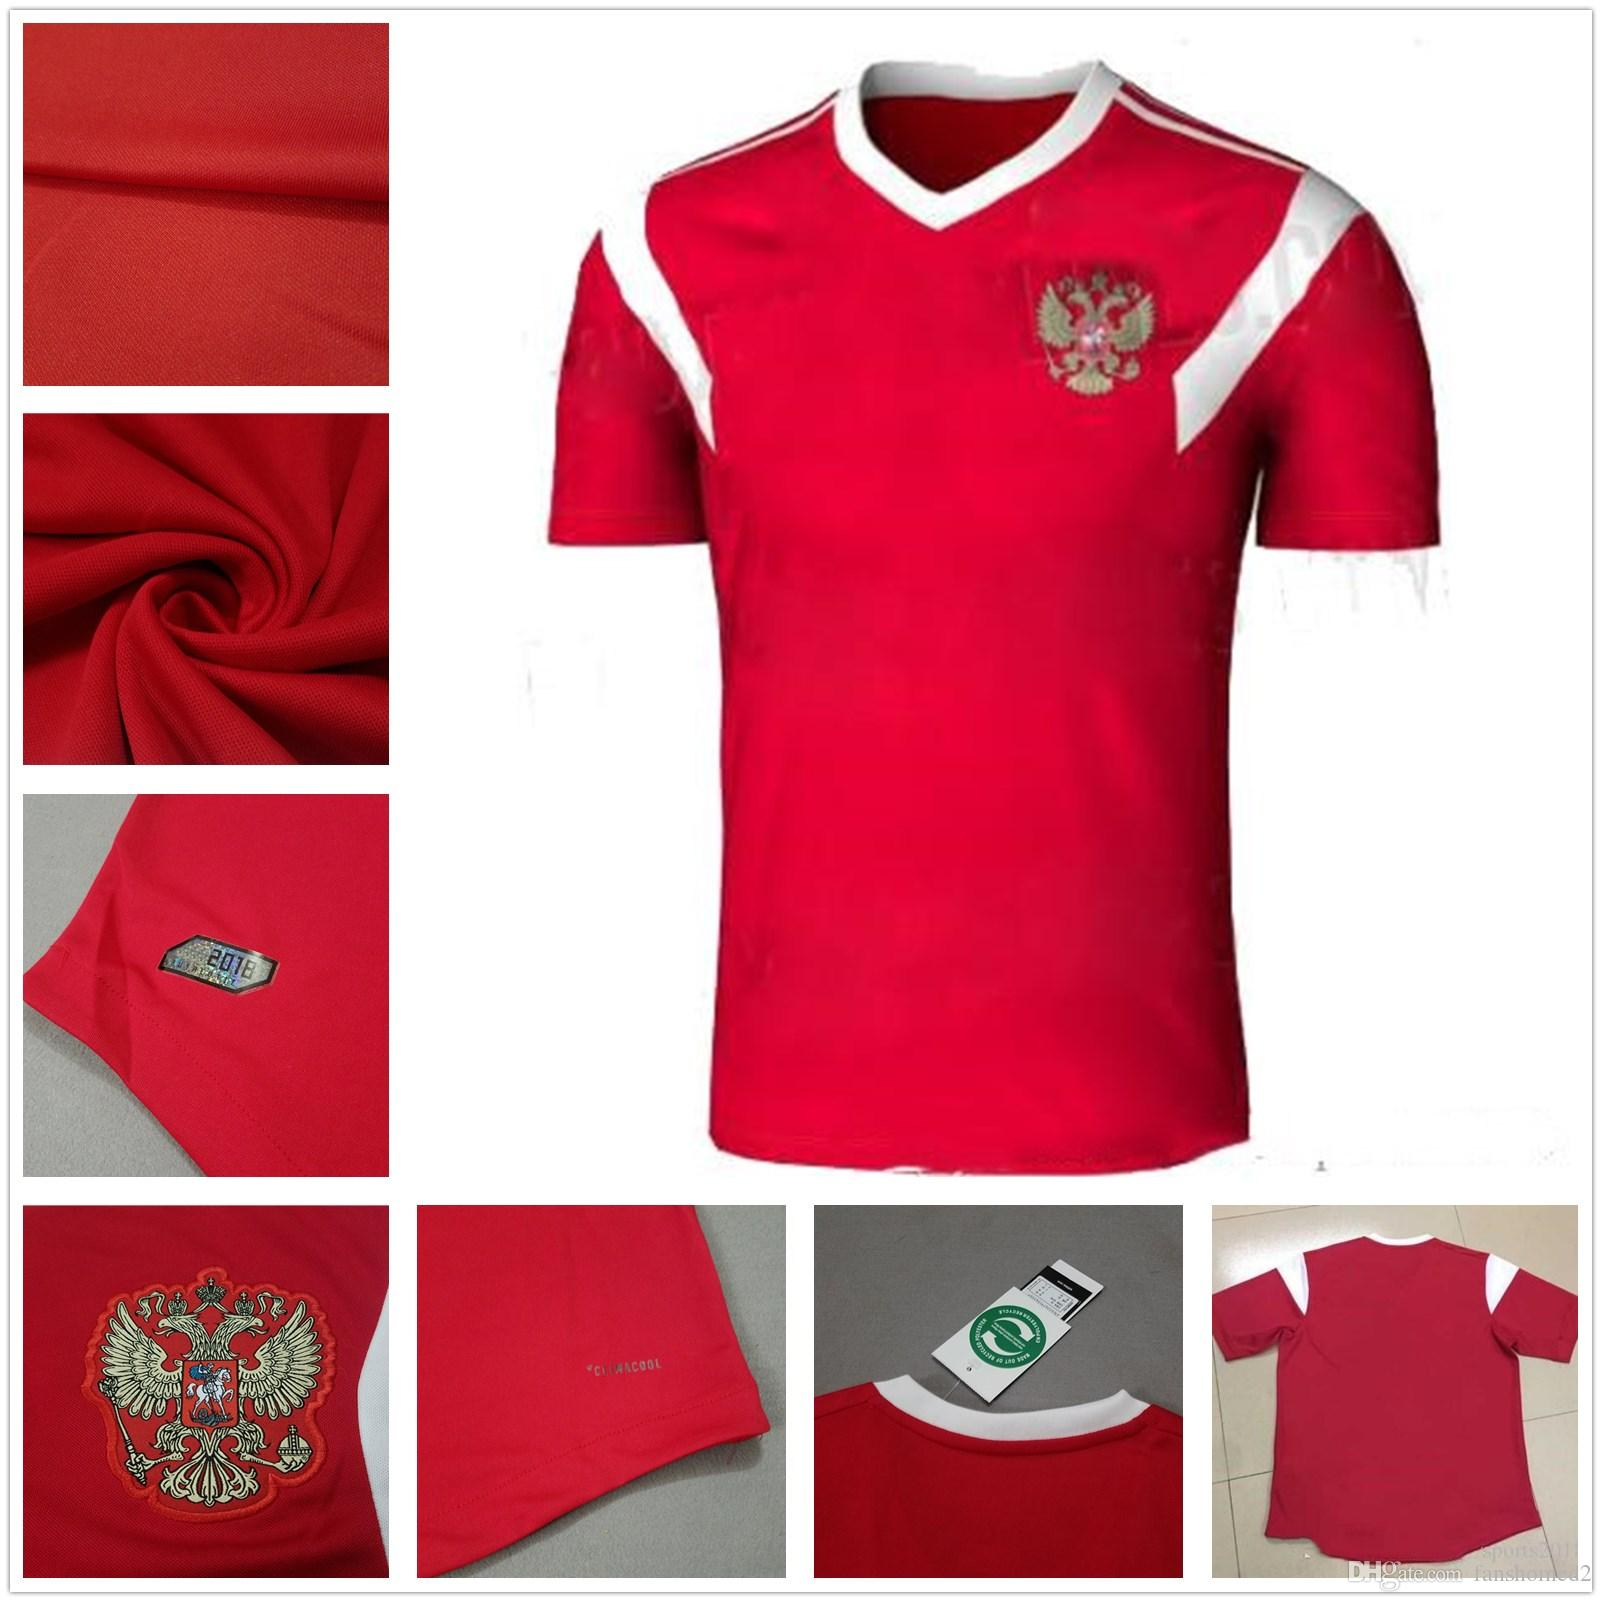 2f5de0940c0 2019 2018 World Cup Russia Jerseys  10 ARSHAVIN 11 KERZHAKOV 14  PAVLYUCHENKO 17 DZAGOEV Home Red Jersey 2018 19 Football Jersey From  Fanshomed2